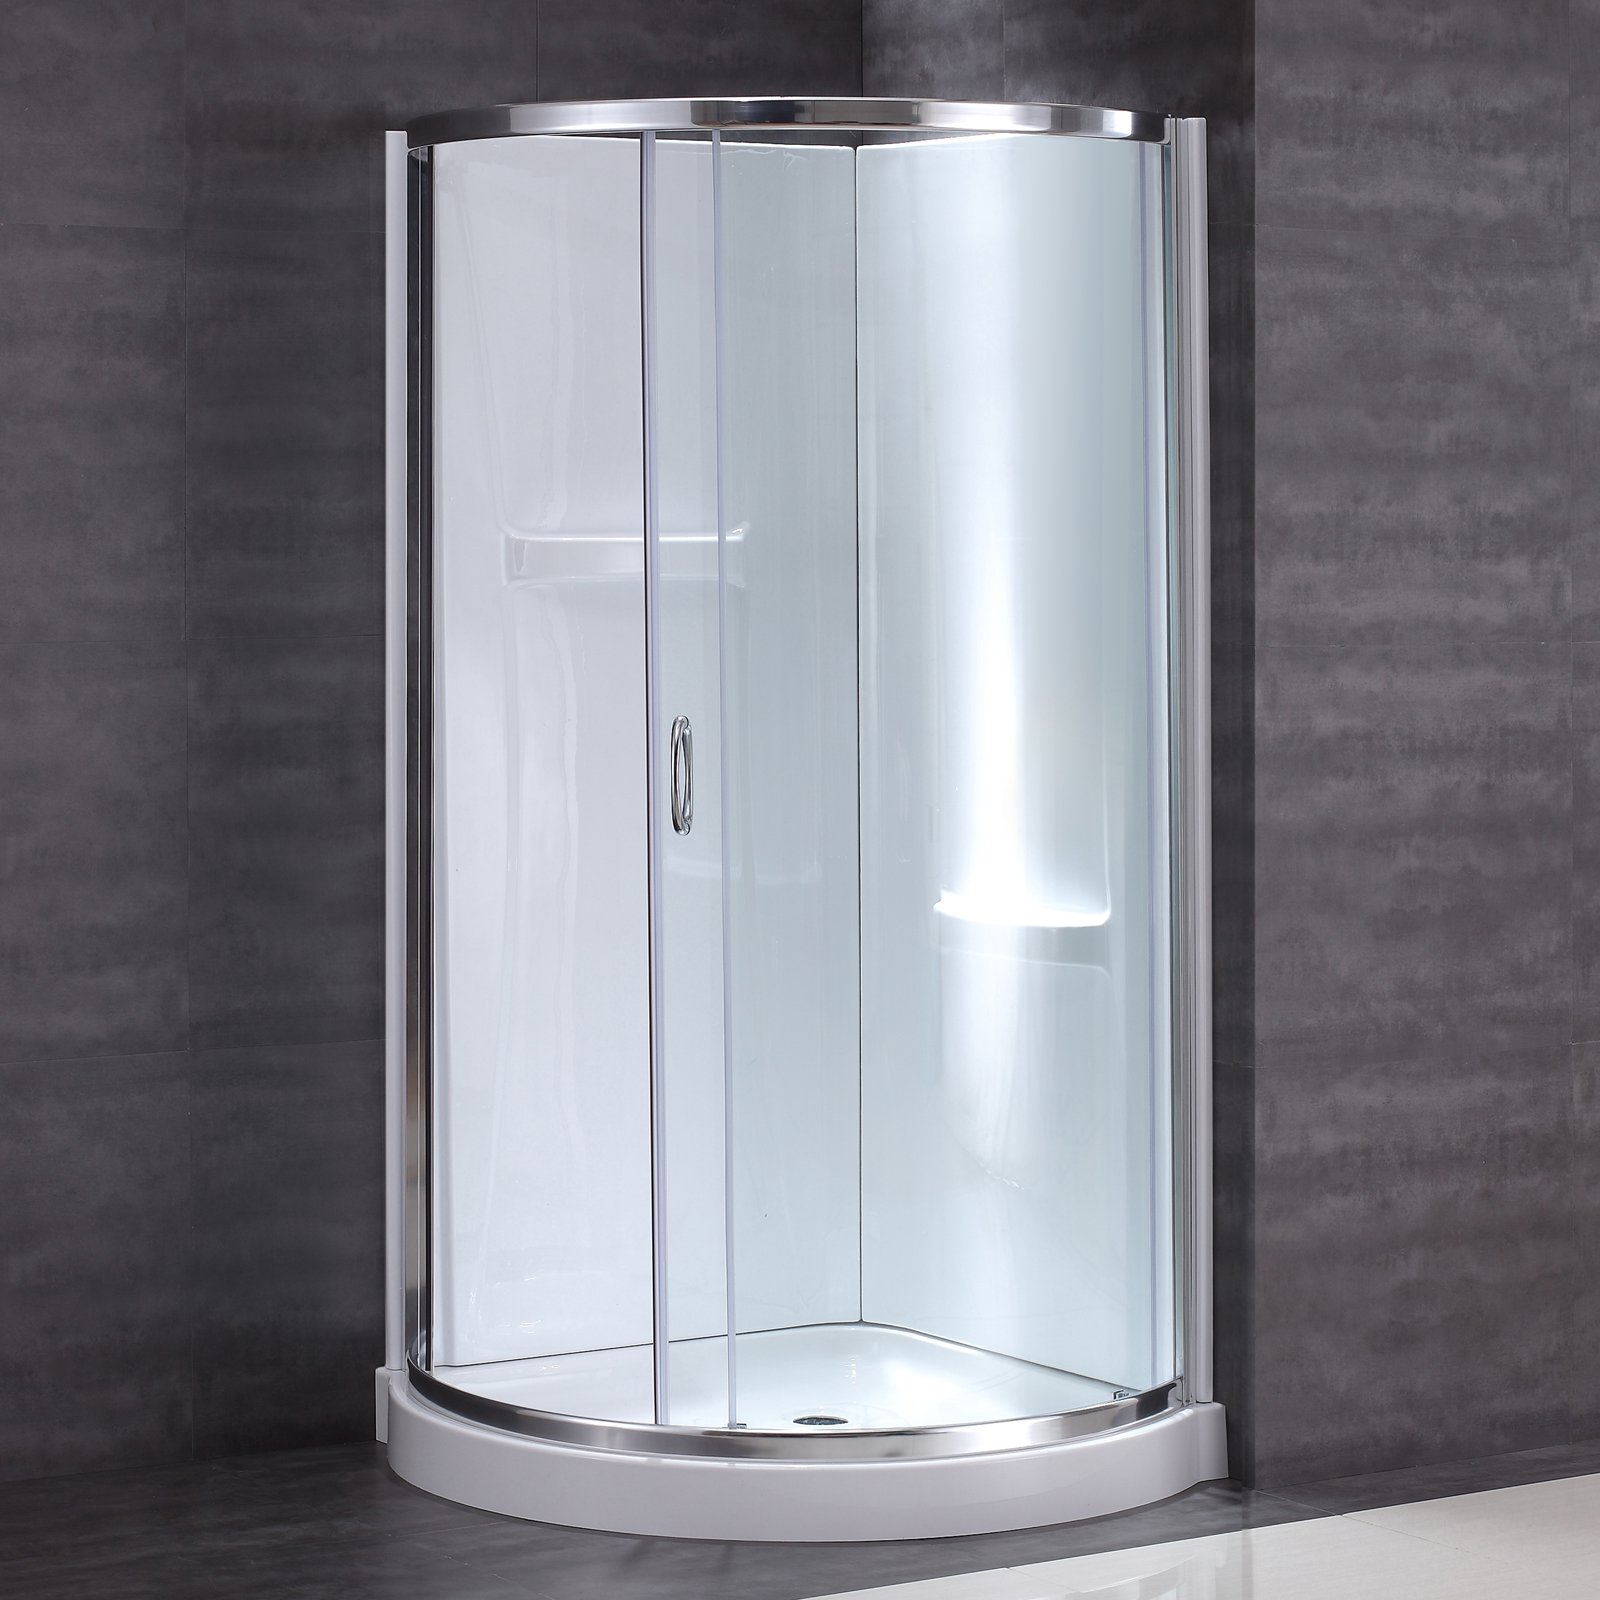 OVE Decors Breeze Shower Kit with Wall and Base